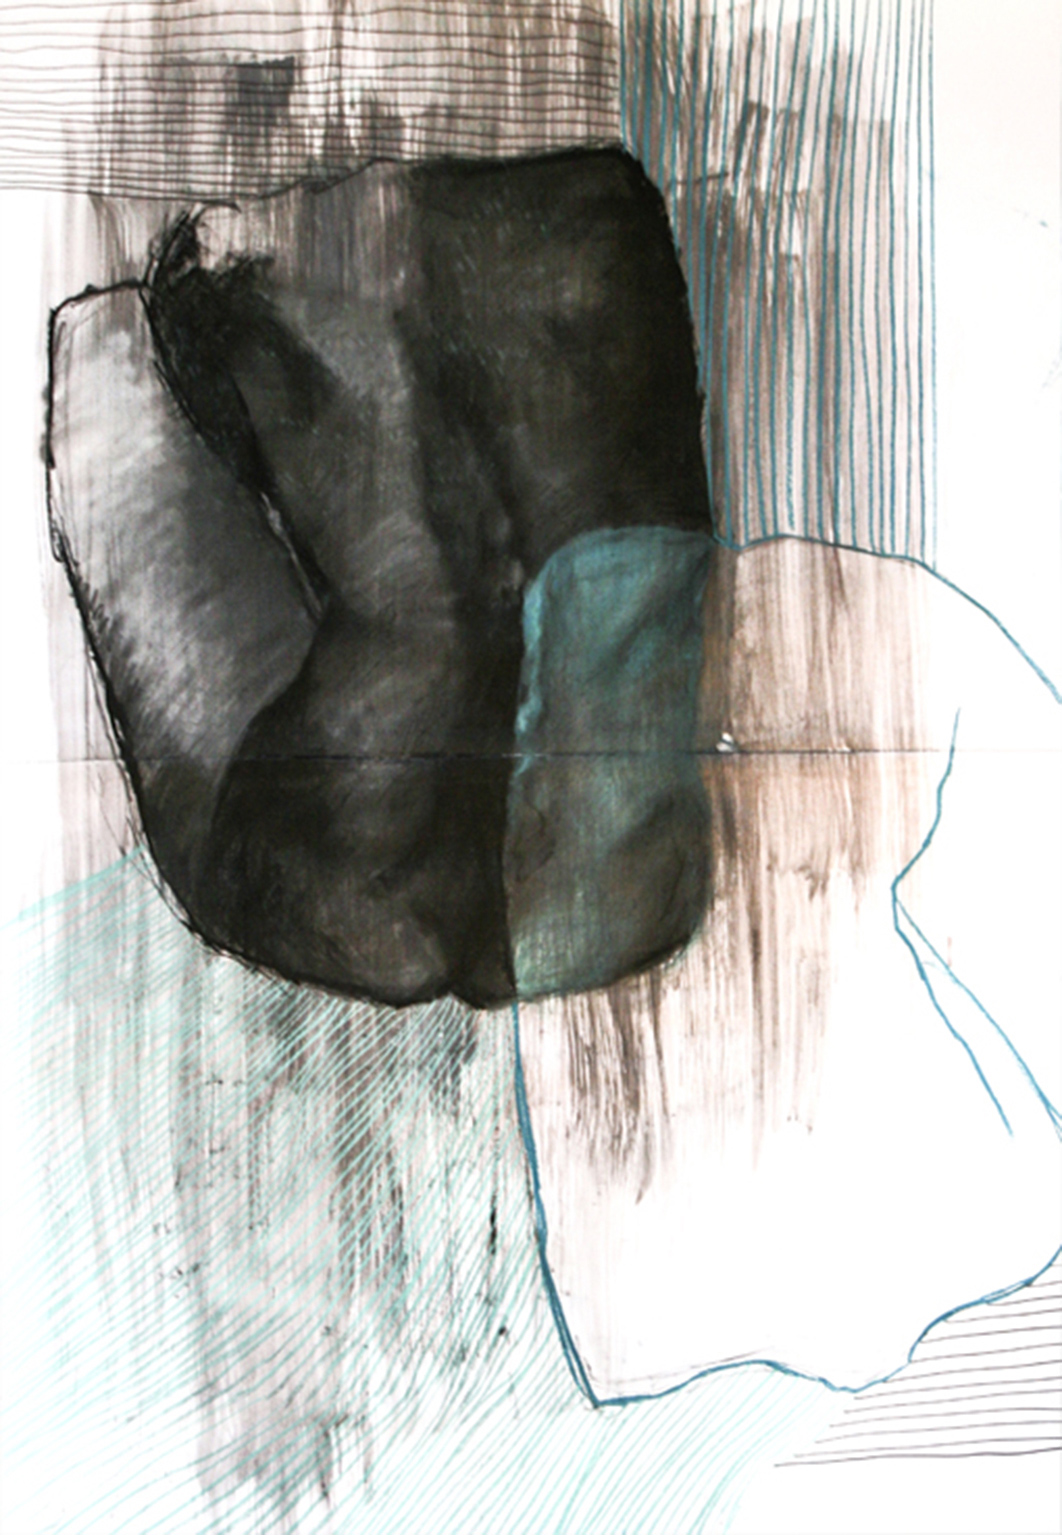 drawings, abstract, aesthetic, figurative, illustrative, minimalistic, portraiture, bodies, patterns, black, green, white, acrylic, charcoal, paper, abstract-forms, beautiful, decorative, interior, interior-design, nude, pretty, Buy original high quality art. Paintings, drawings, limited edition prints & posters by talented artists.